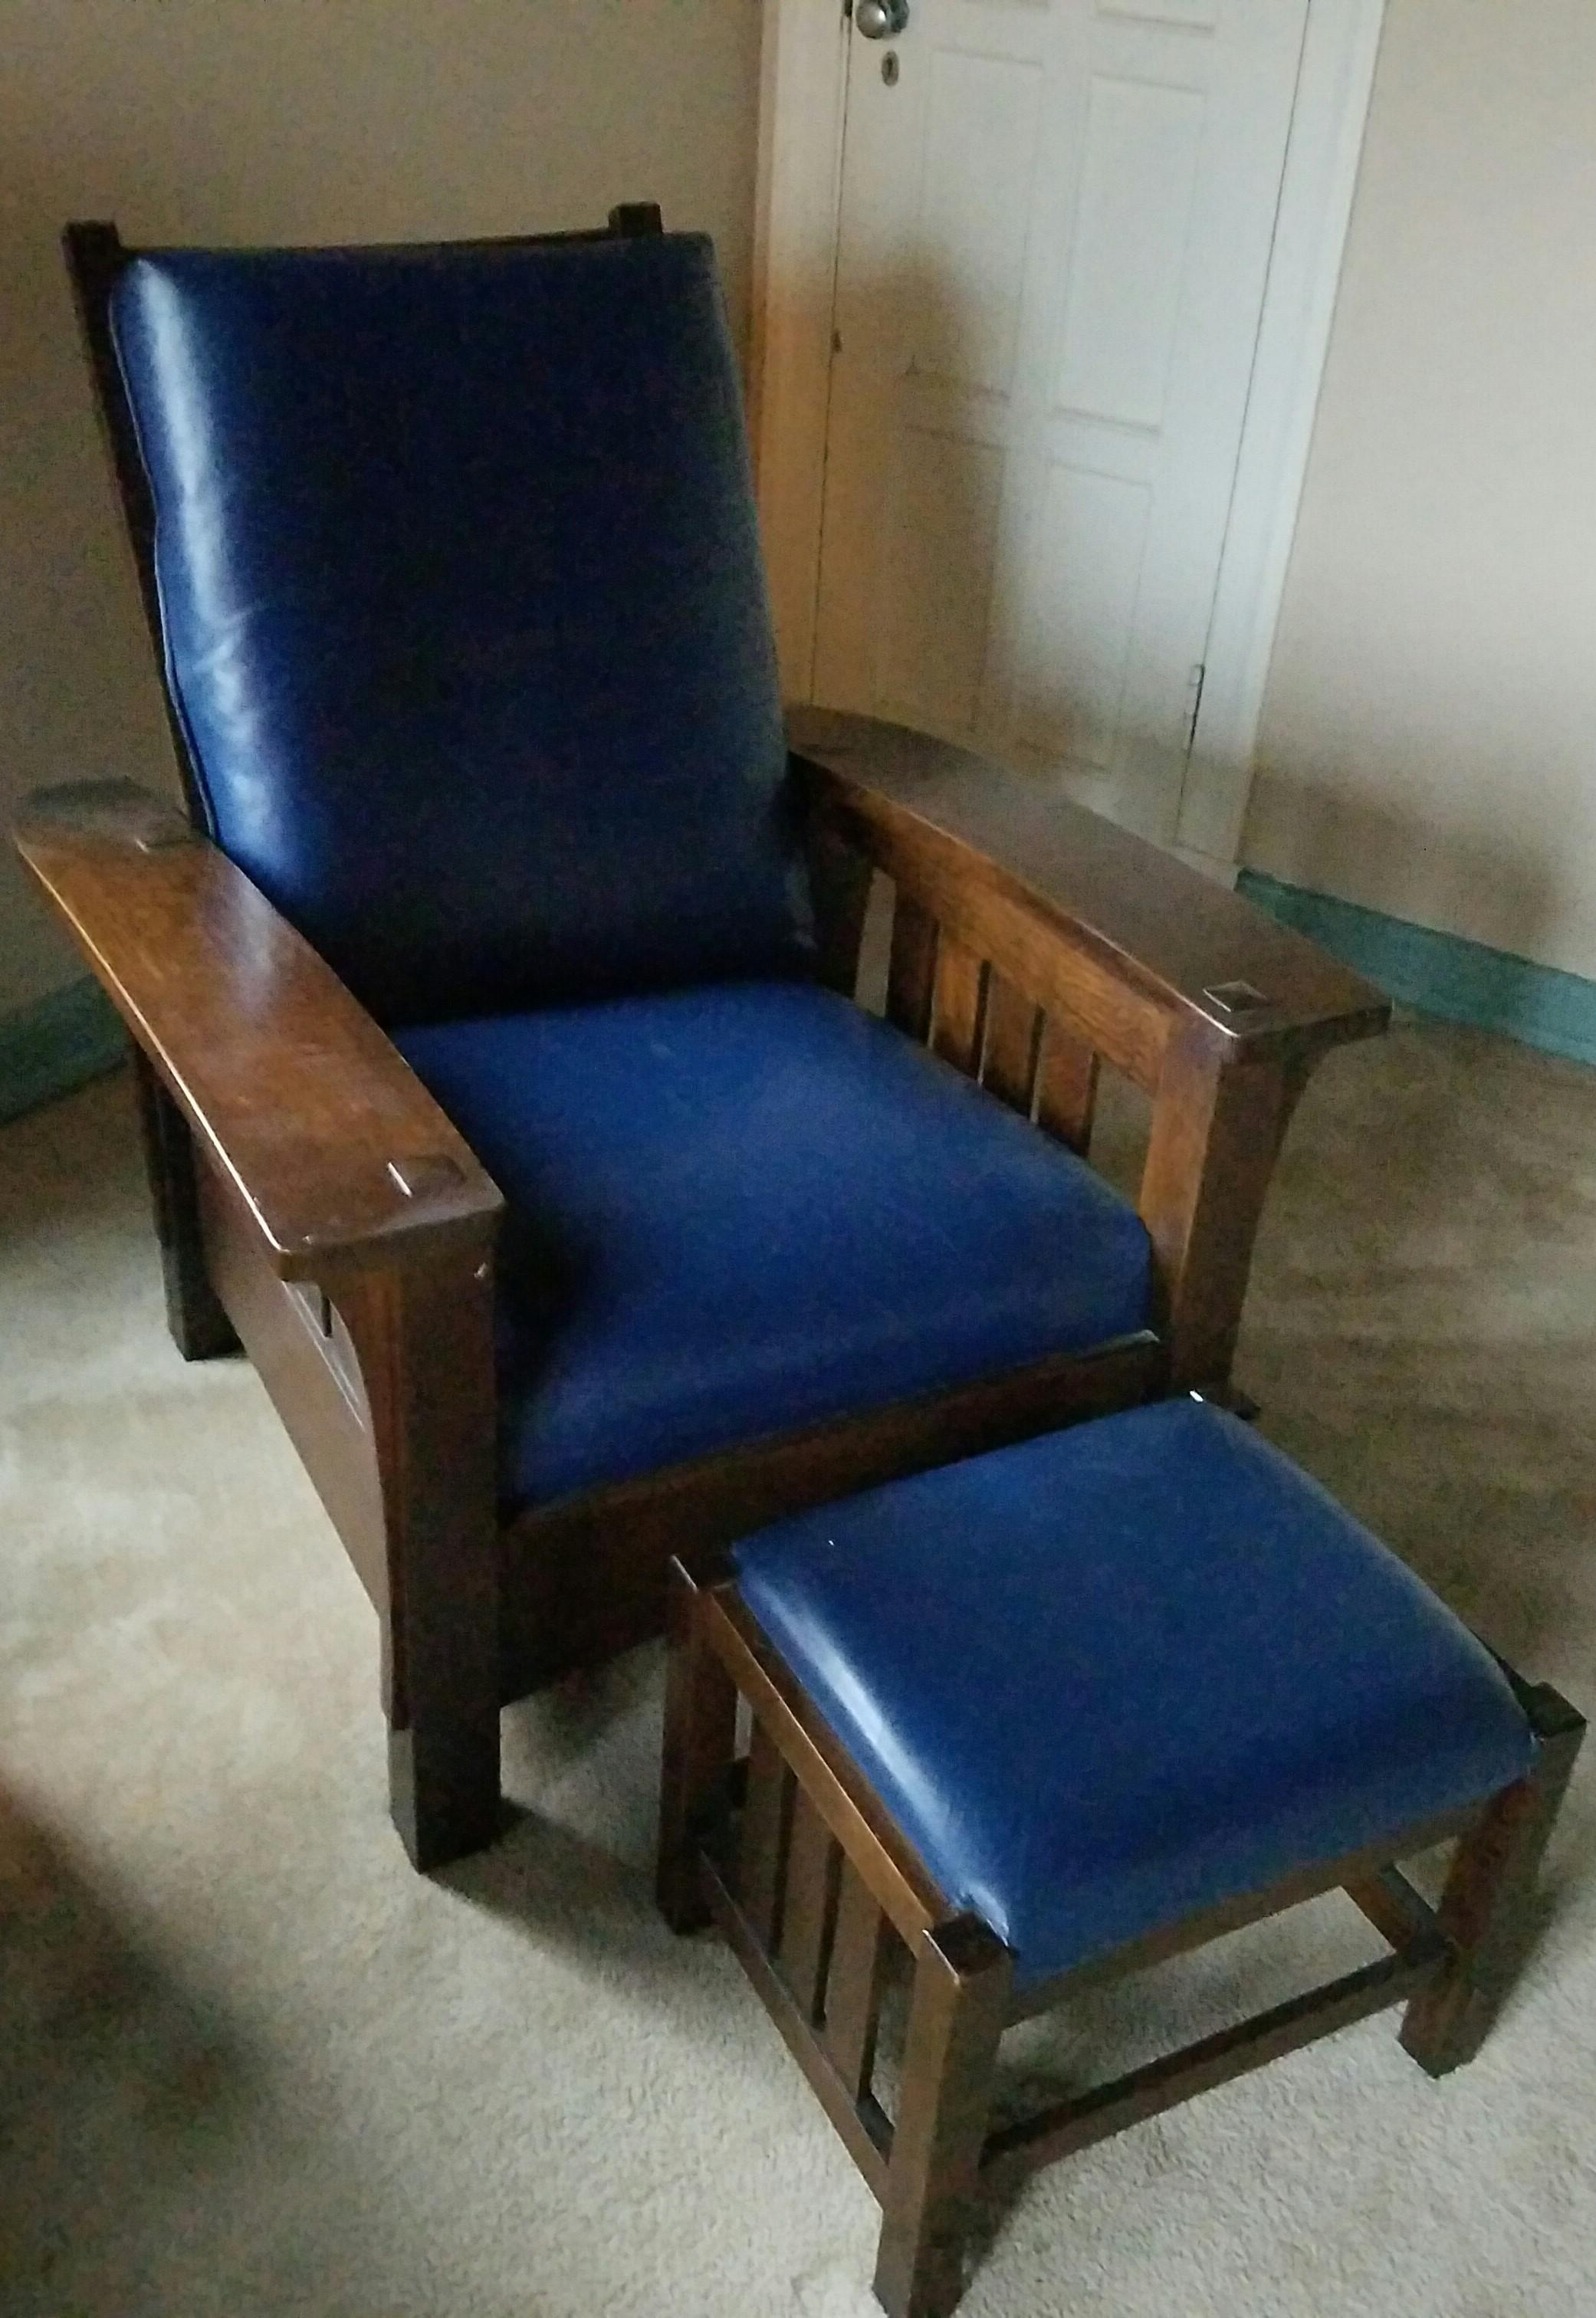 Stickley Bow Morris Recliner Chair \u0026 Ottoman Navy Leather A-1 - Image 2 of  sc 1 st  Chairish & Stickley Bow Morris Recliner Chair \u0026 Ottoman Navy Leather A-1 ... islam-shia.org